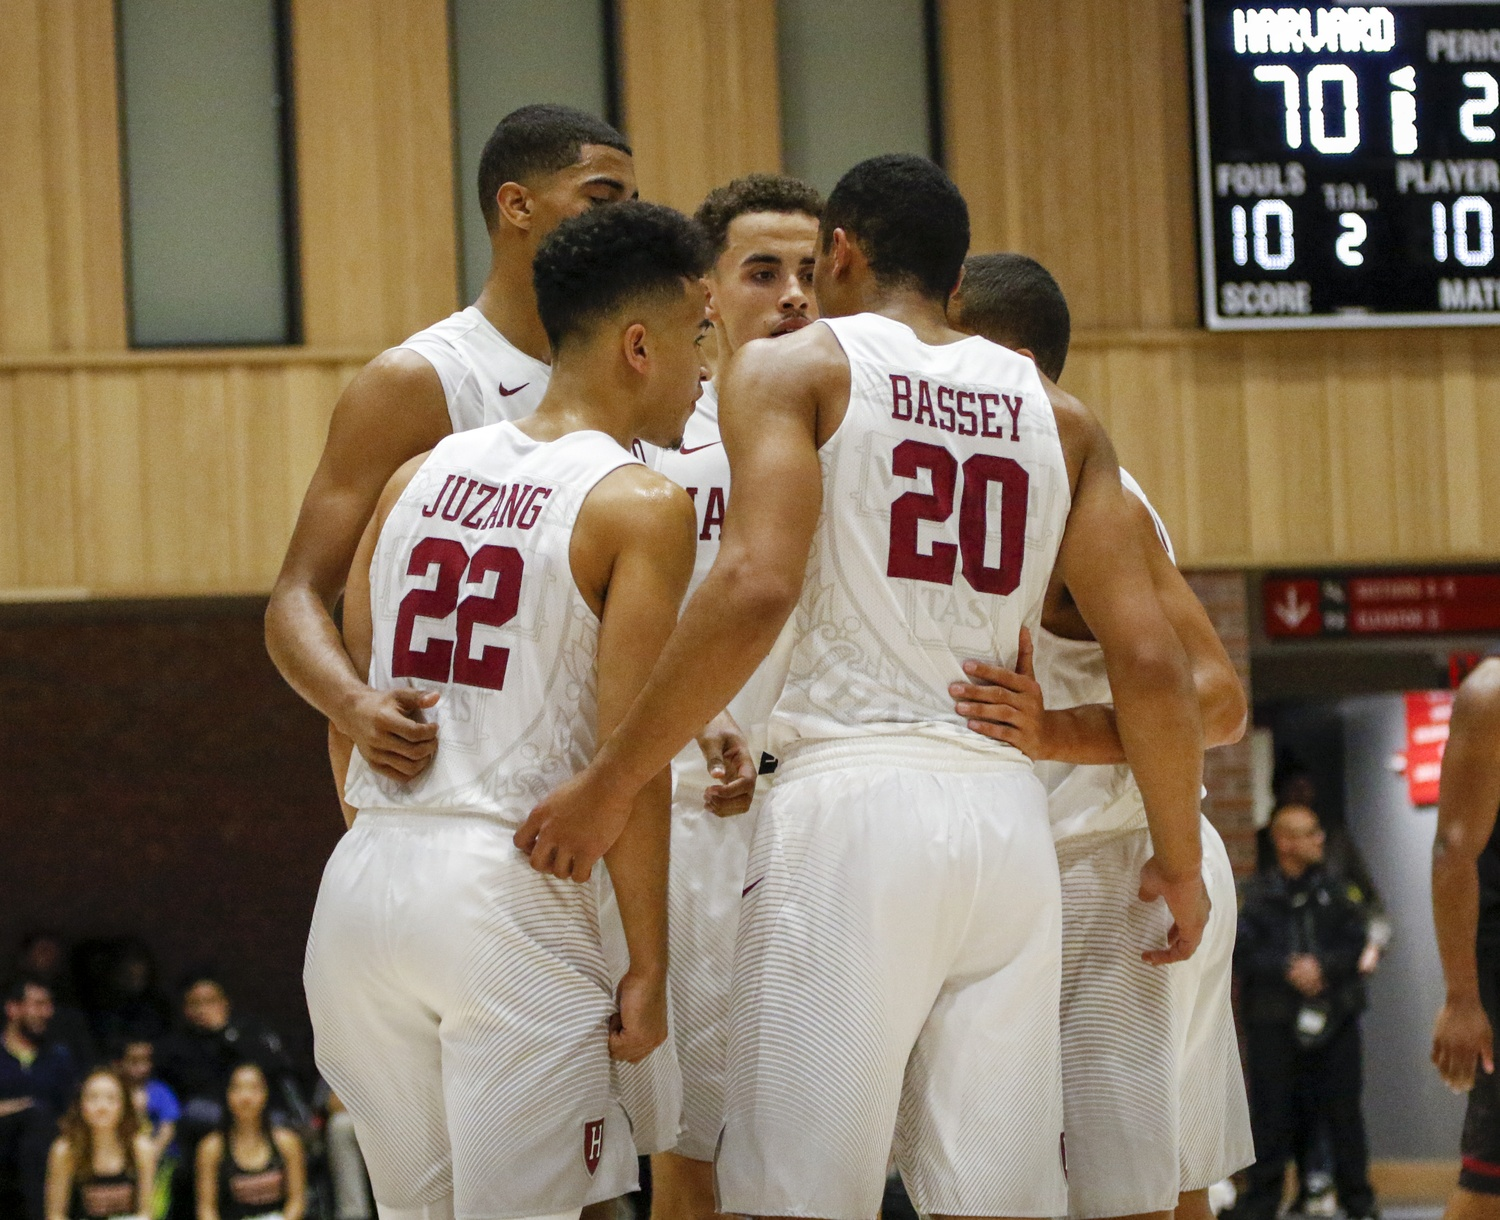 The 2018-2019 non-conference slate features five contests at Lavietes Pavilion and nine games on the road, capstoned by a Jan. 2 trip to Chapel Hill to take on UNC.